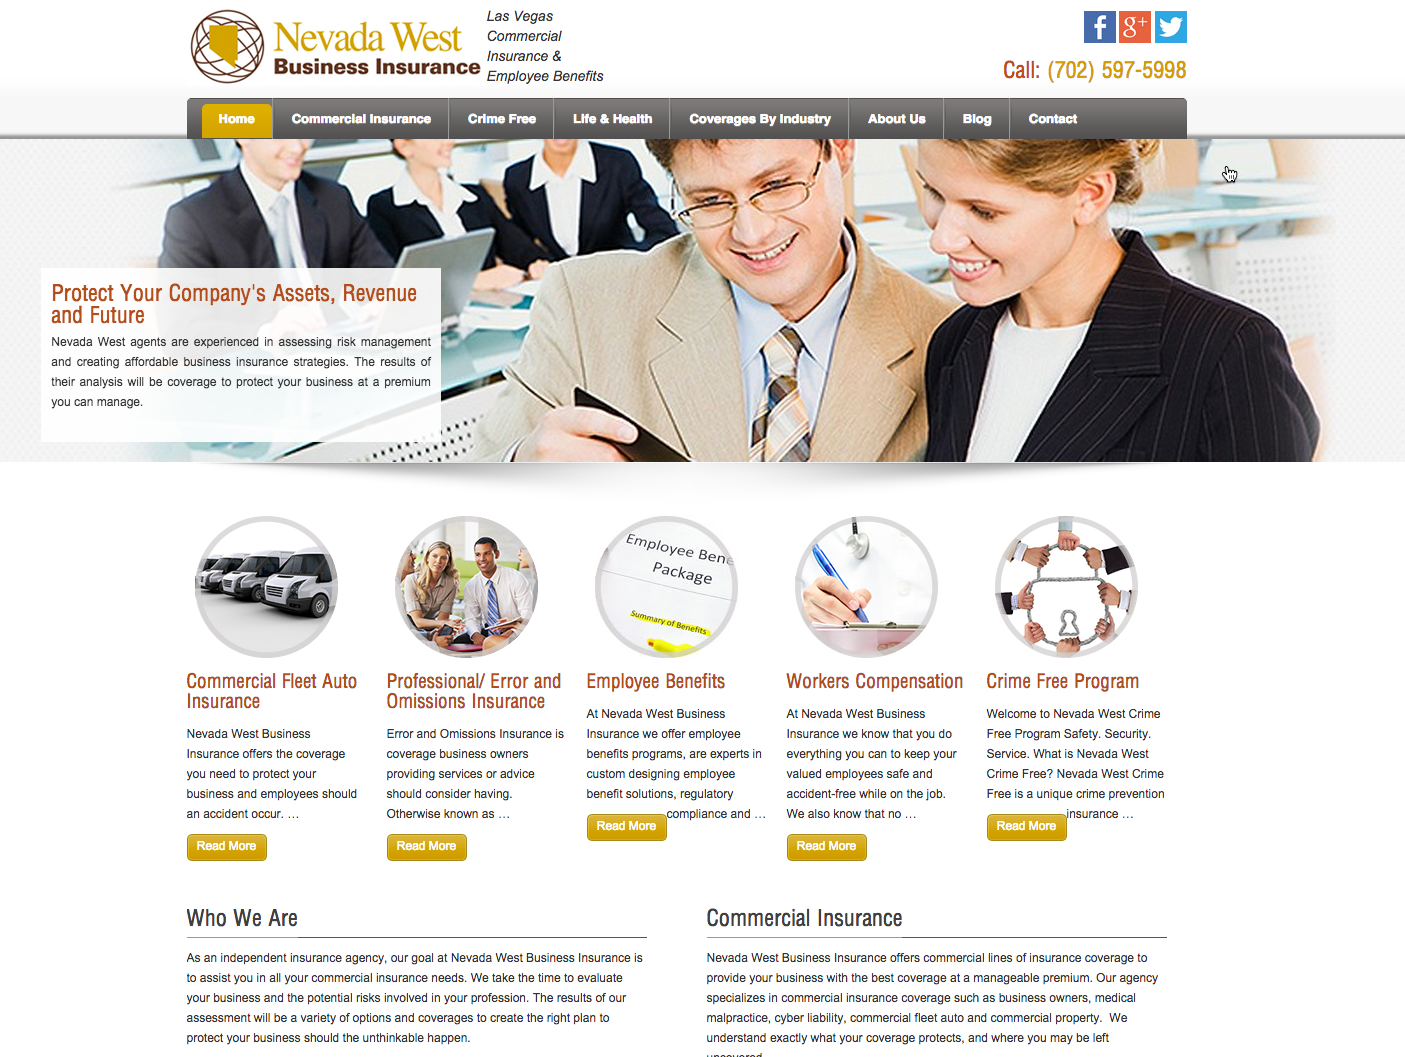 nv west business insurance - West Website